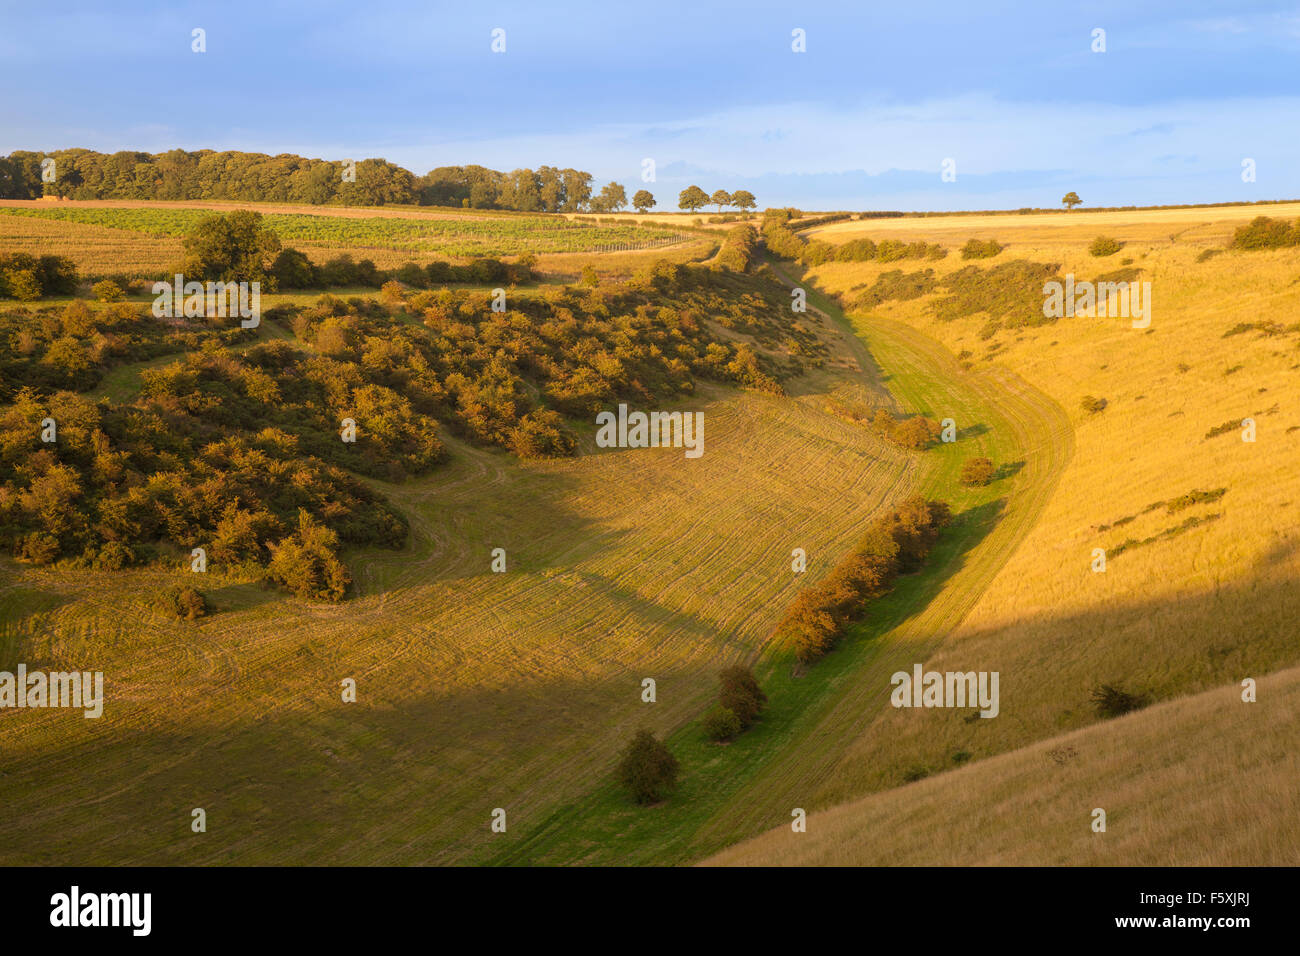 View down Sylvain Dale near Huggate in the Yorkshire Wolds, East Yorkshire, UK - Stock Image